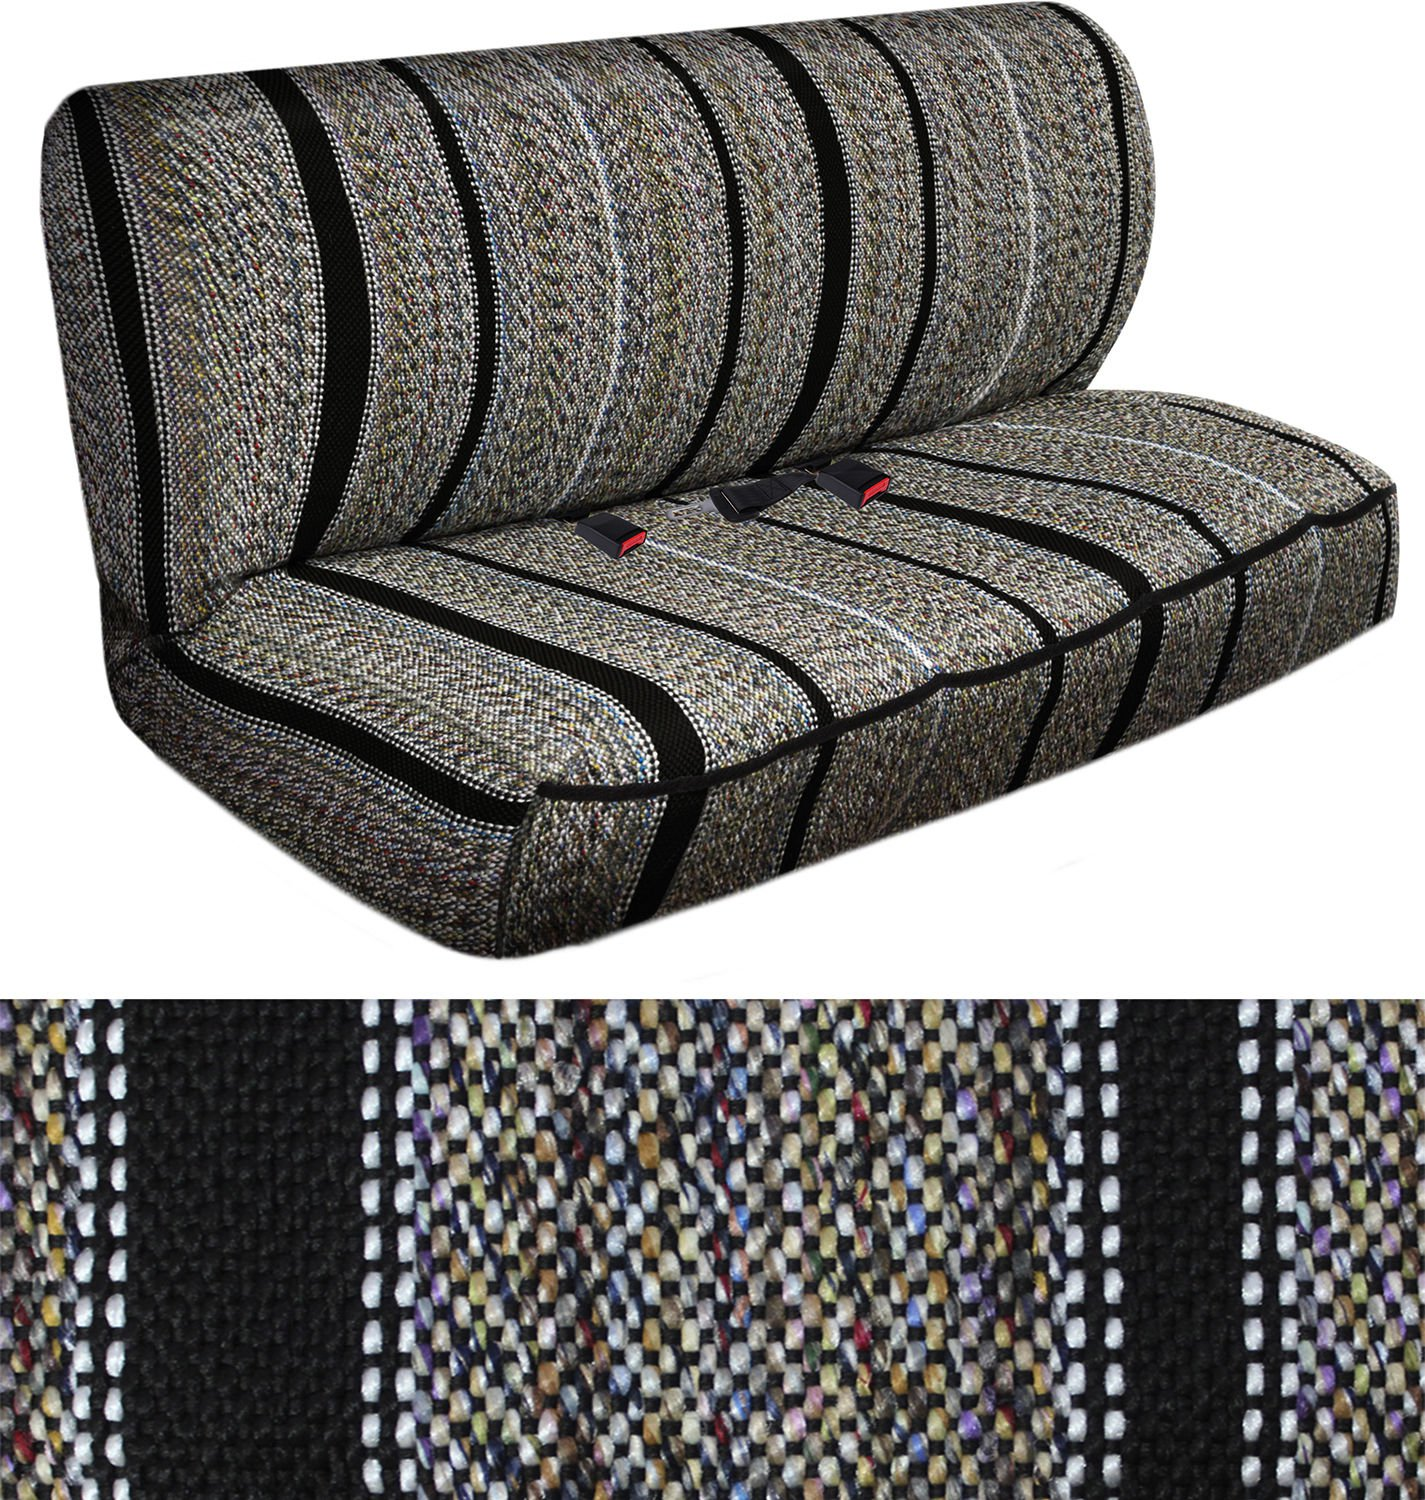 Suv Van Truck Seat Cover Black Western Woven Saddle